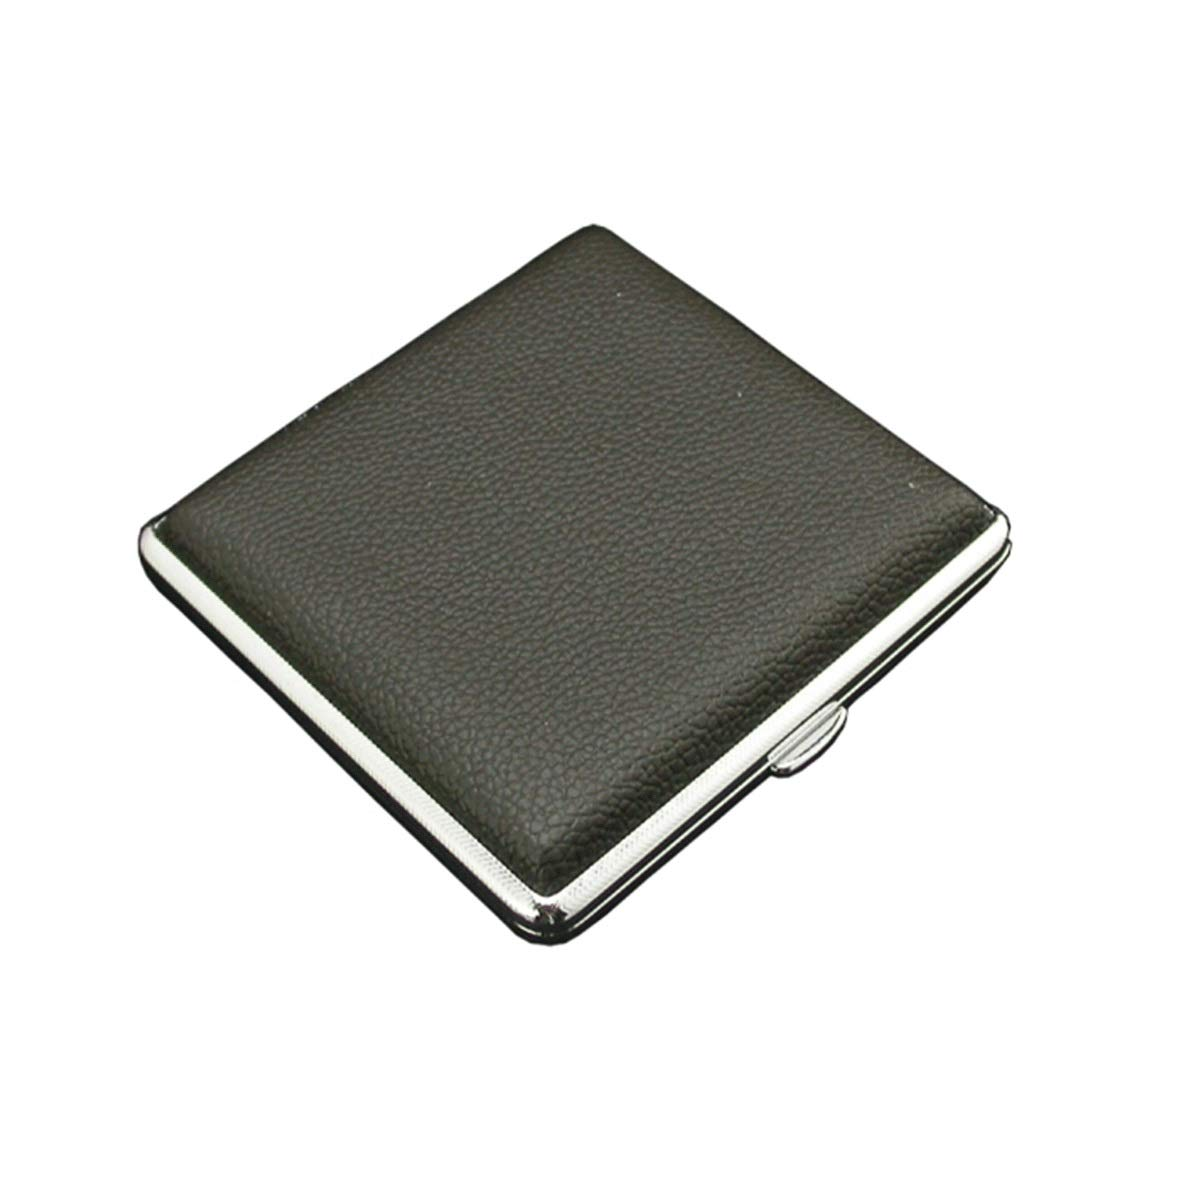 WENPINHUI Cigarette Case Moisture-Proof and Pressure-Resistant Cigarette Case Stainless Steel Black Cigarette Case Leather Cigarette Case Can Hold 20 Cigarettes (Size : 987819MM) by WENPINHUI